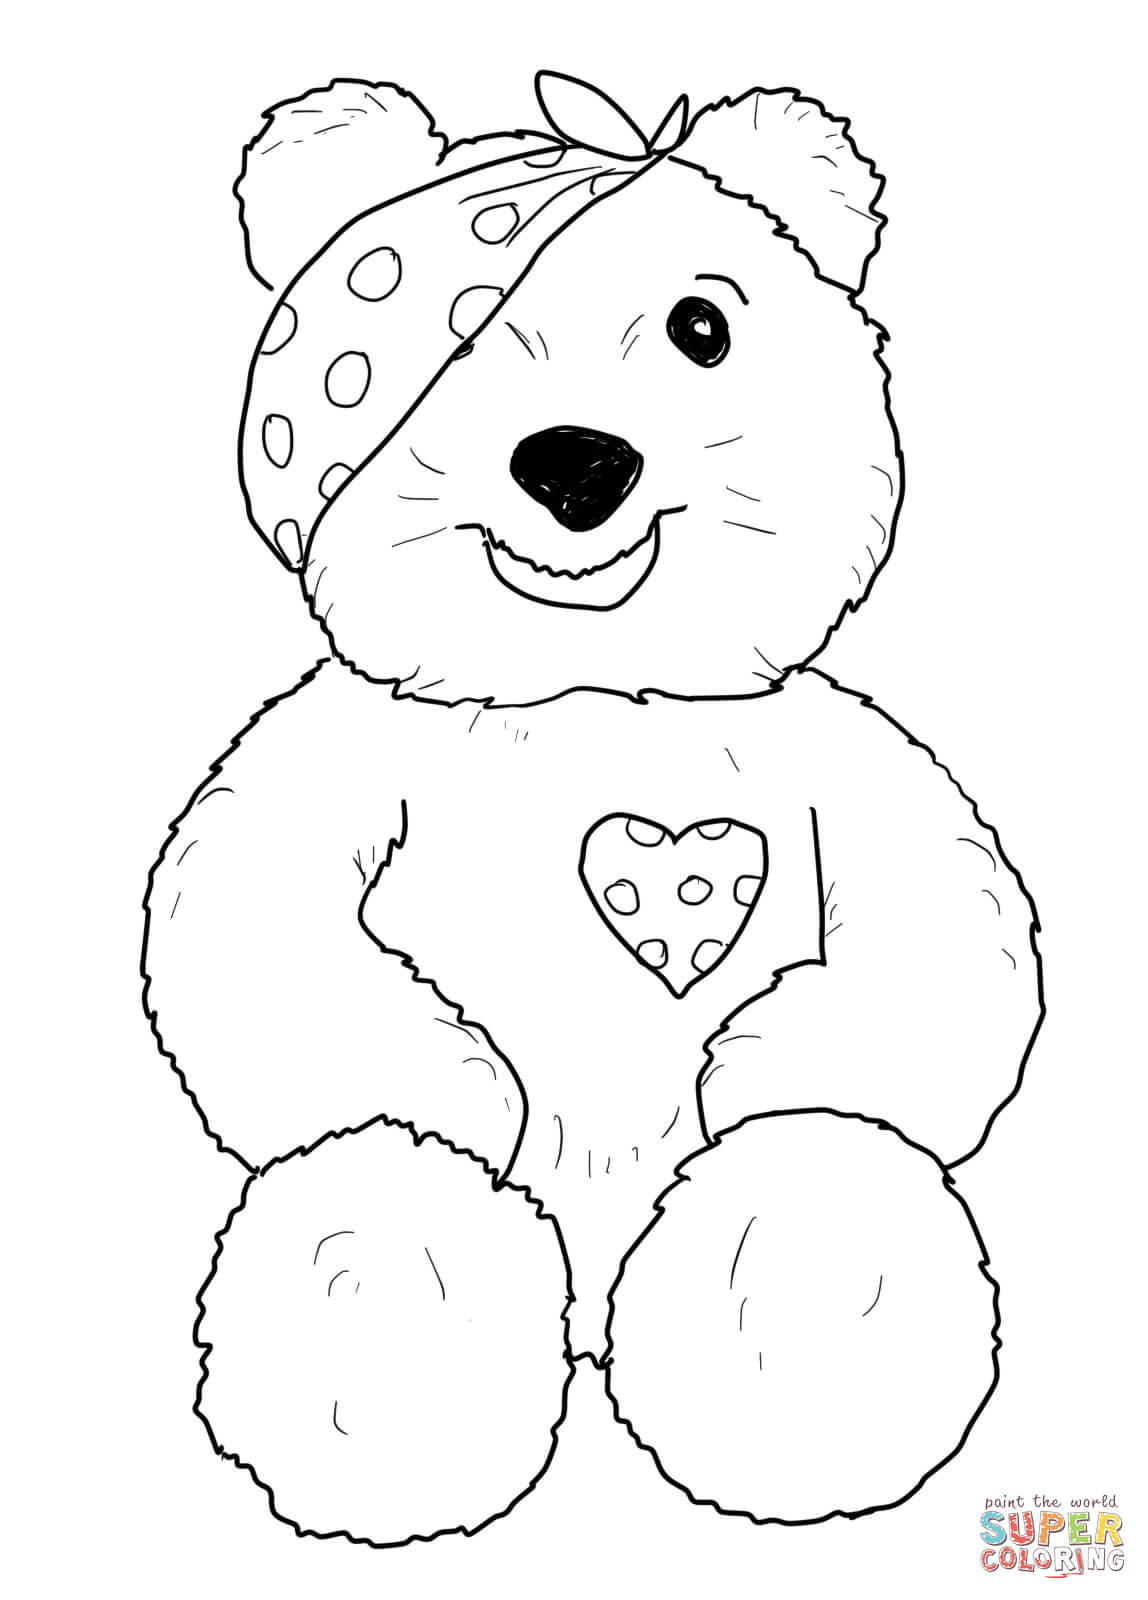 pudsey bear colouring sheets 93 coloring pages pudsey bear printable care bears bear sheets pudsey colouring